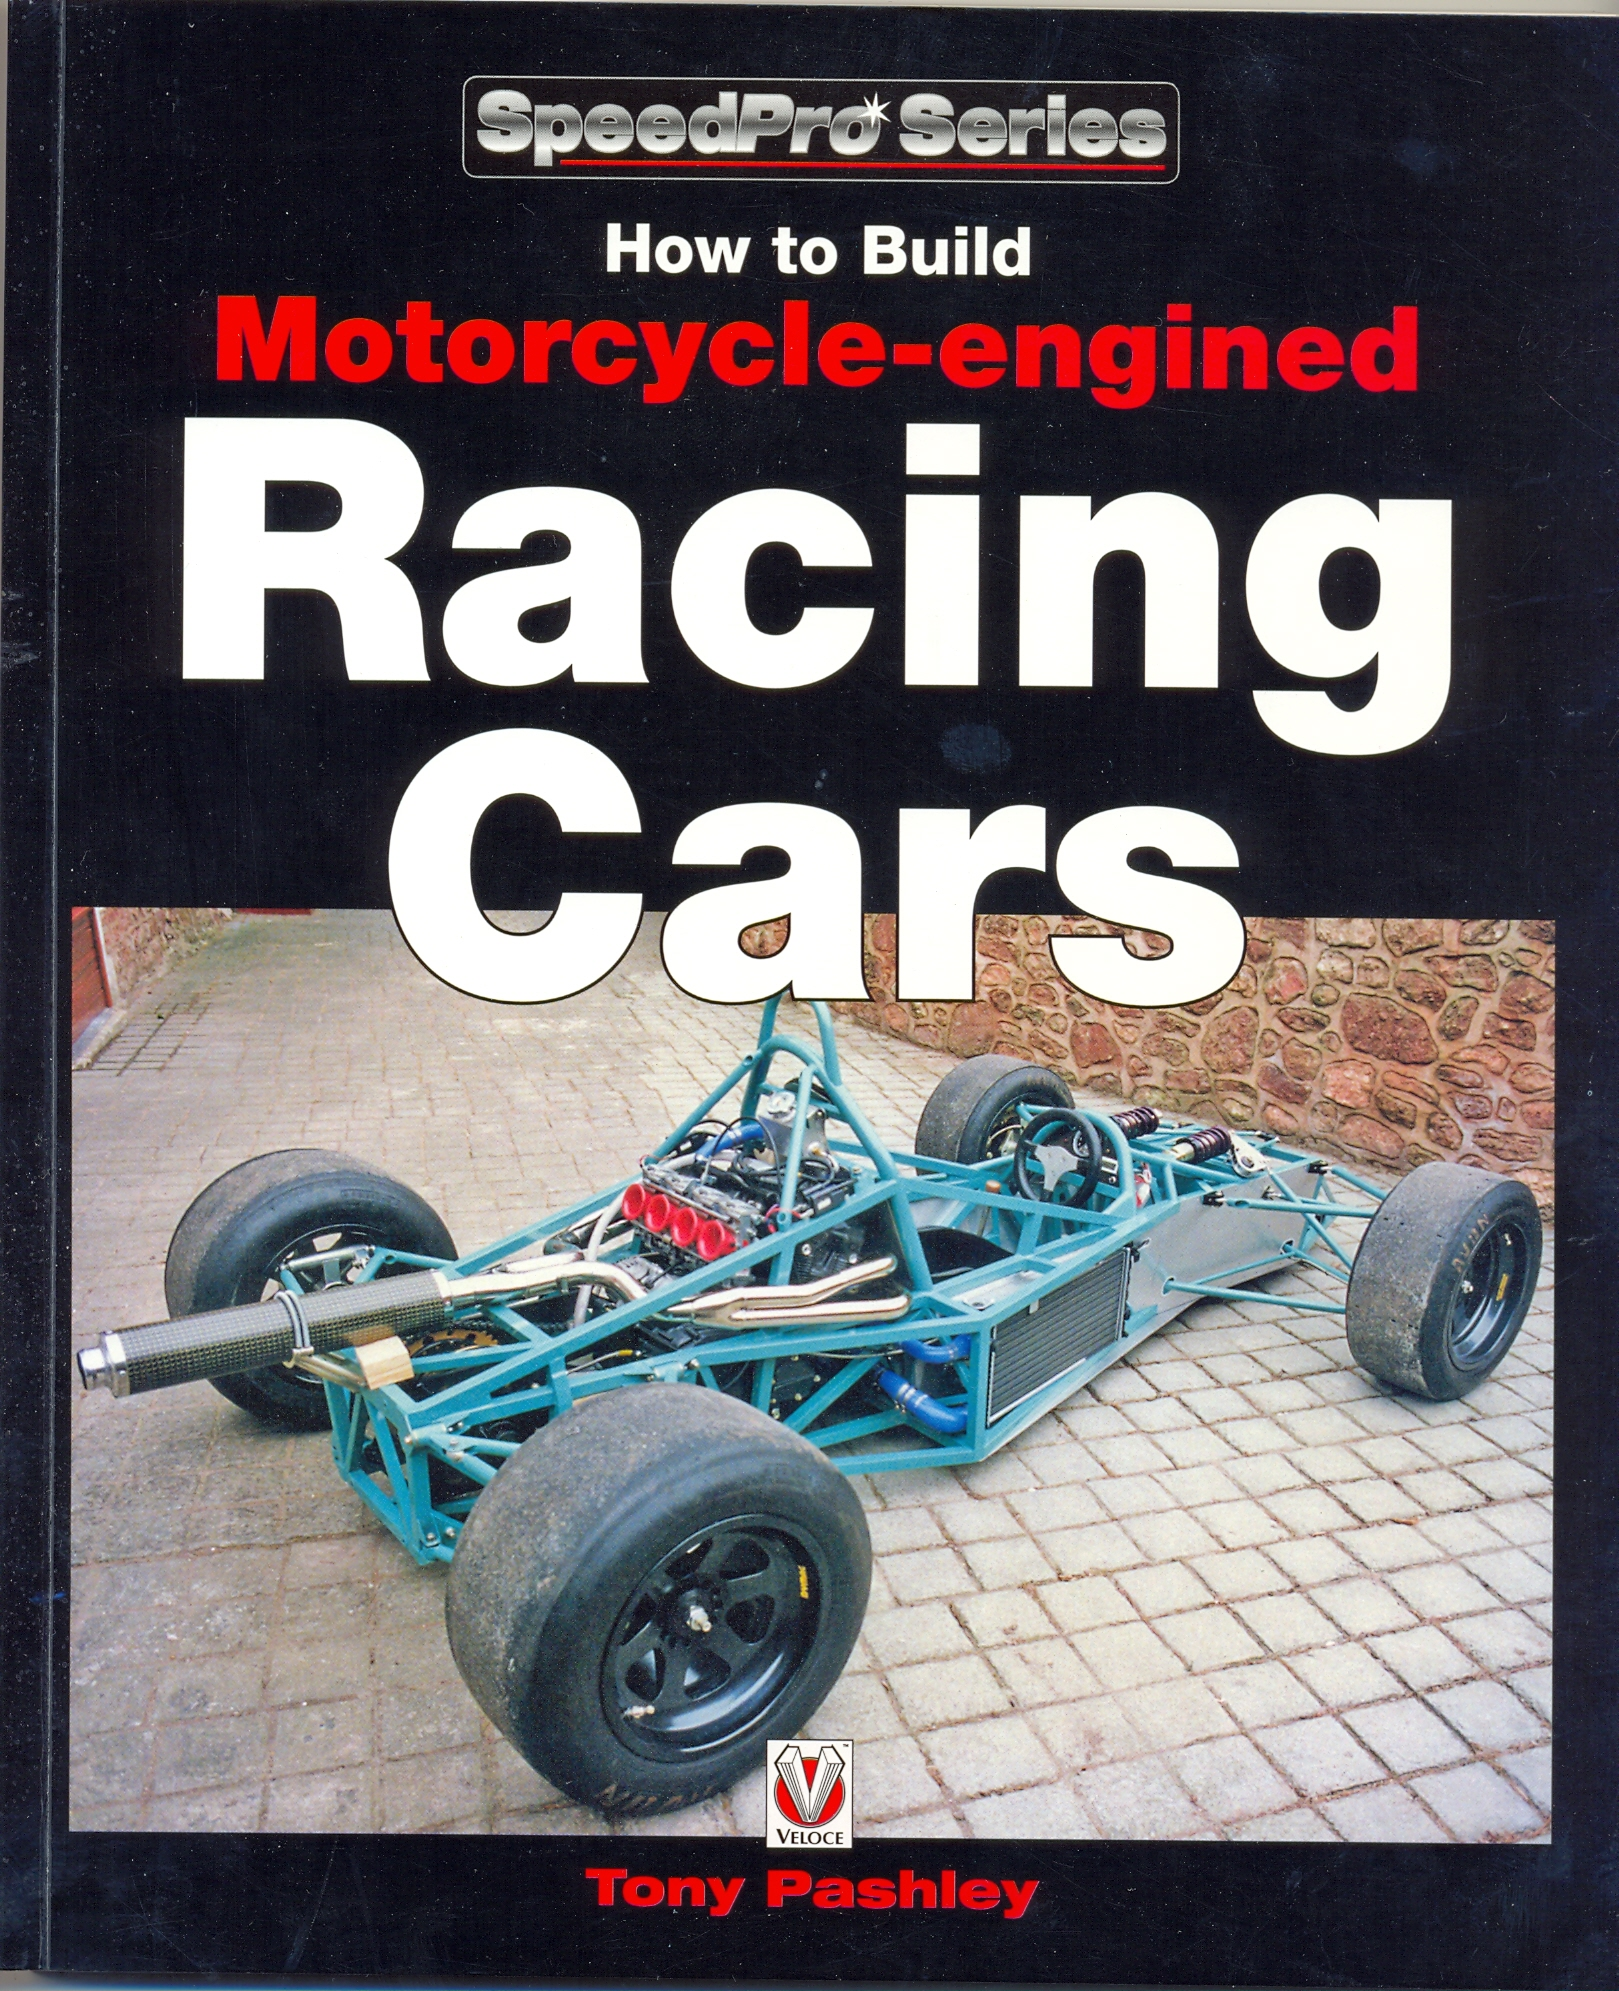 Build A Car >> How To Build Motorcycle Engined Racing Cars Kimberley Media Group